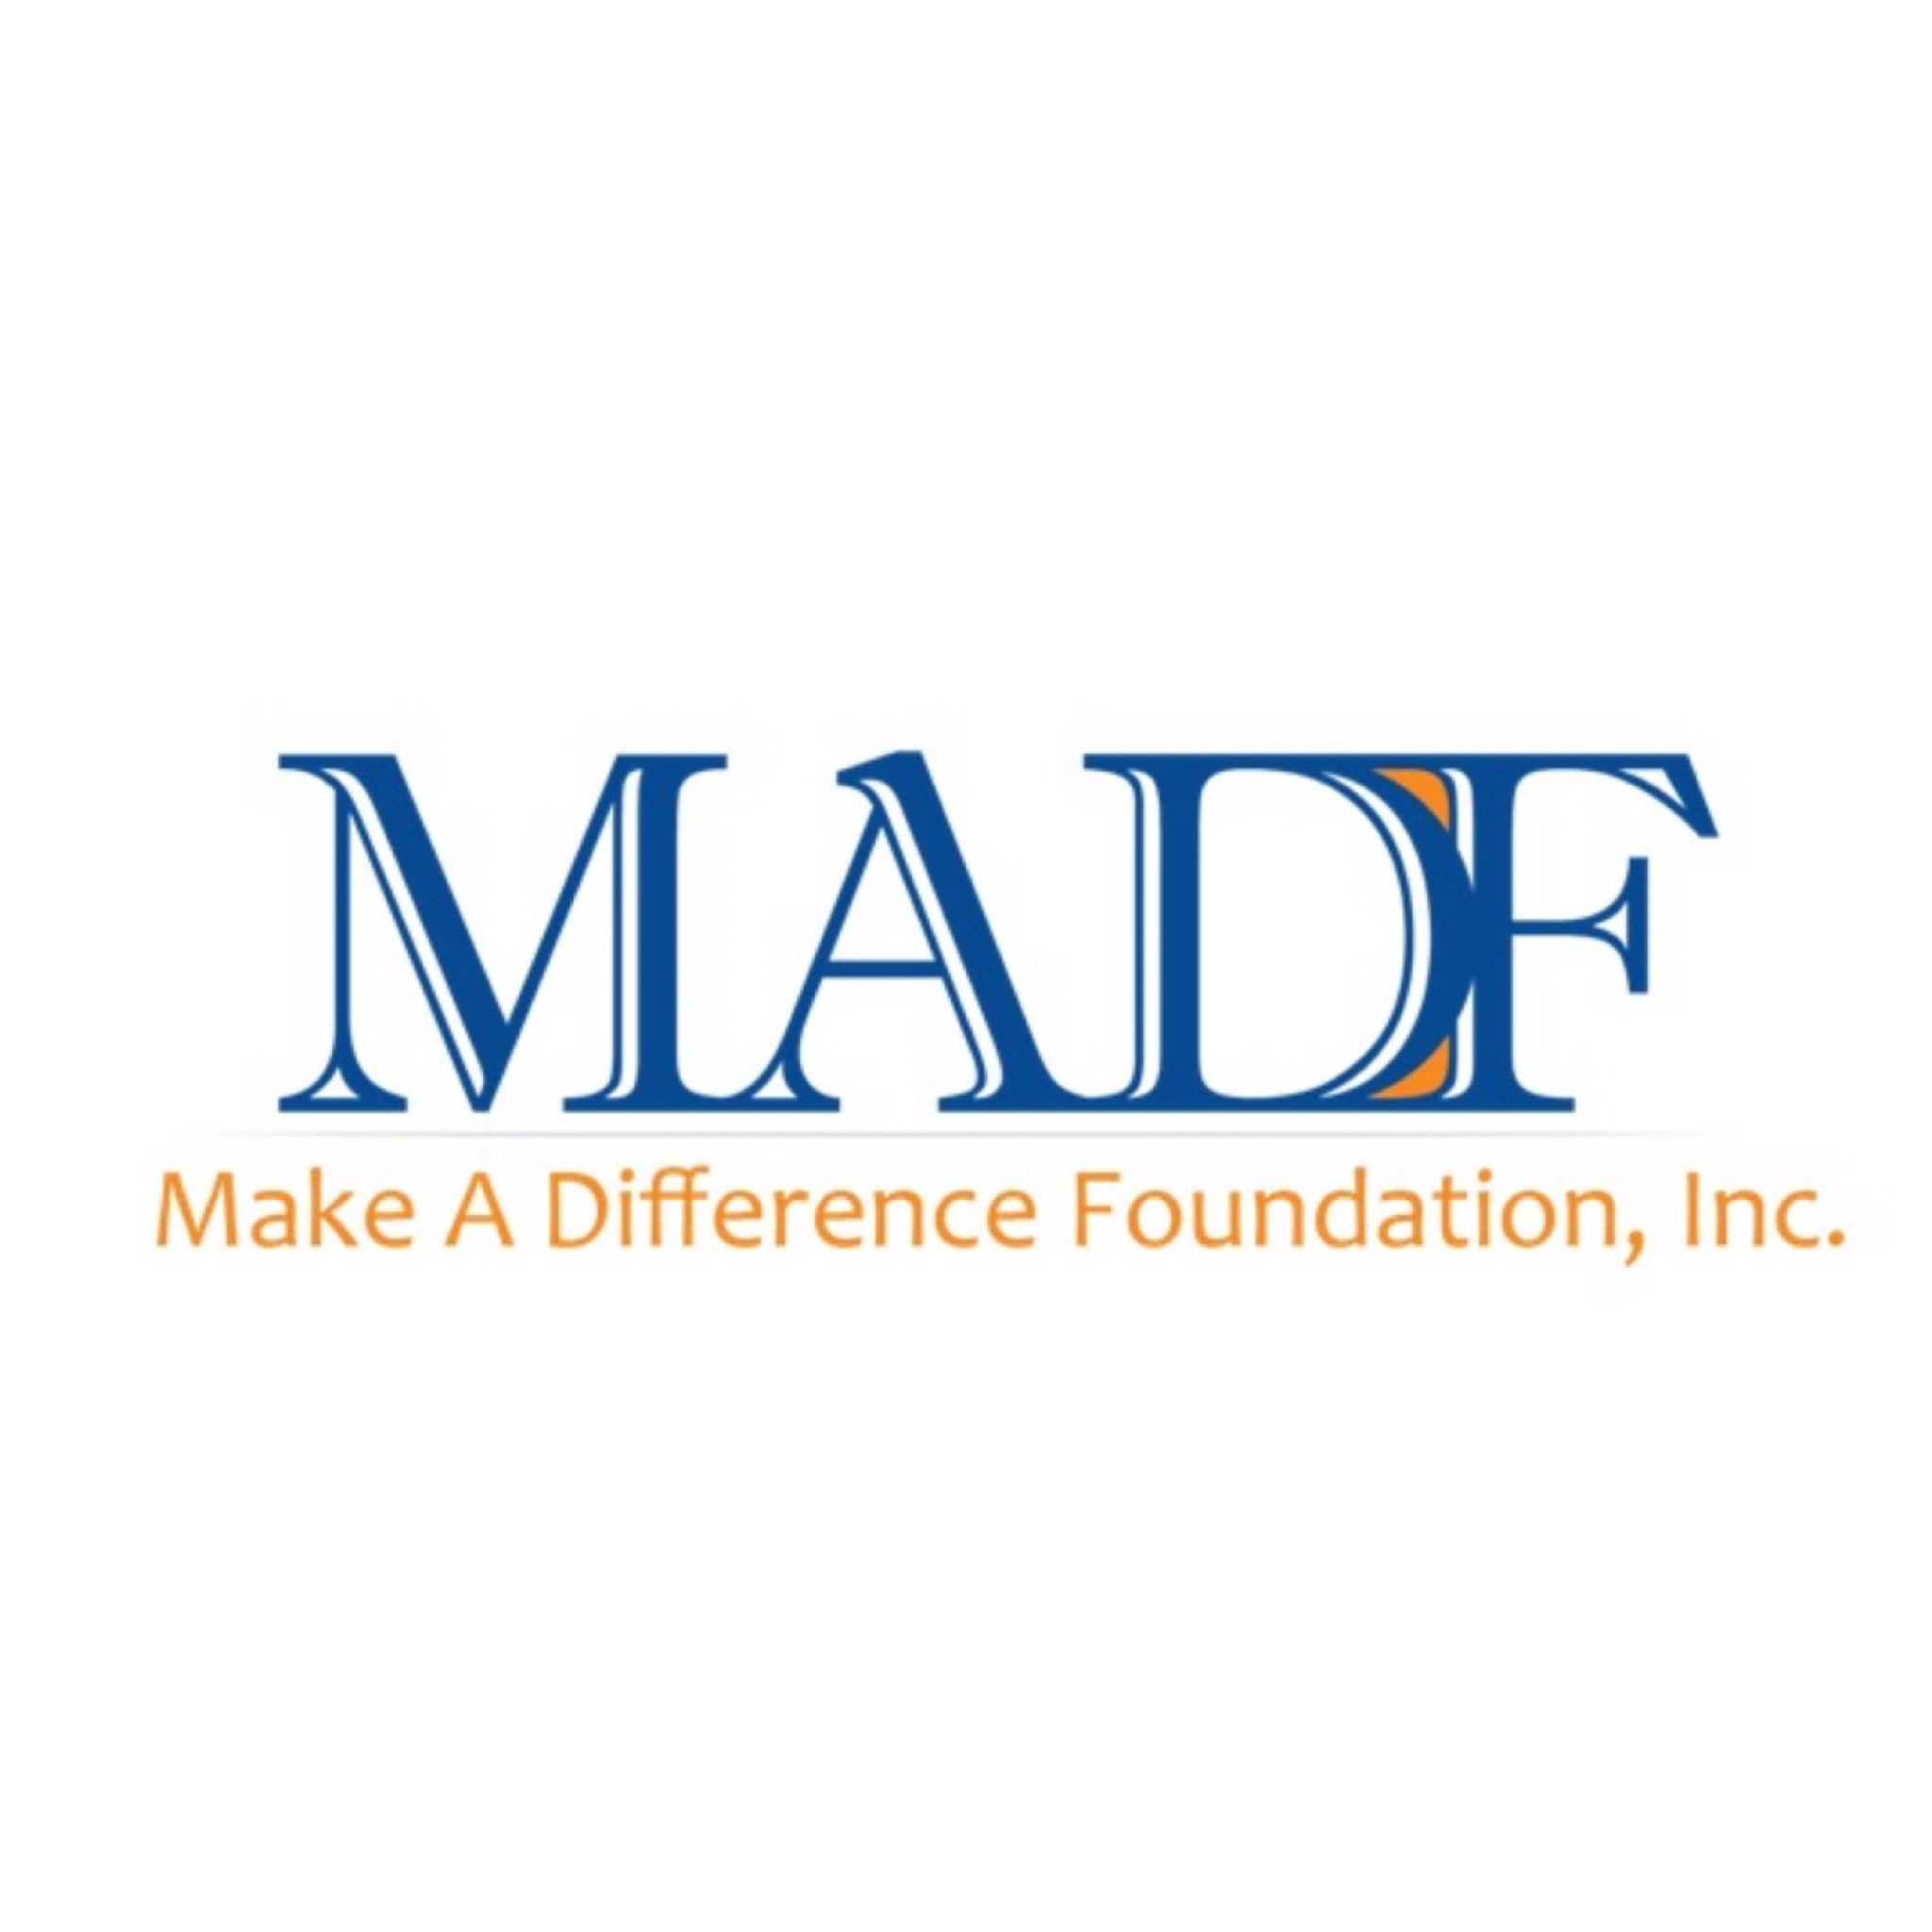 Make A DIfference Foundation, Inc.